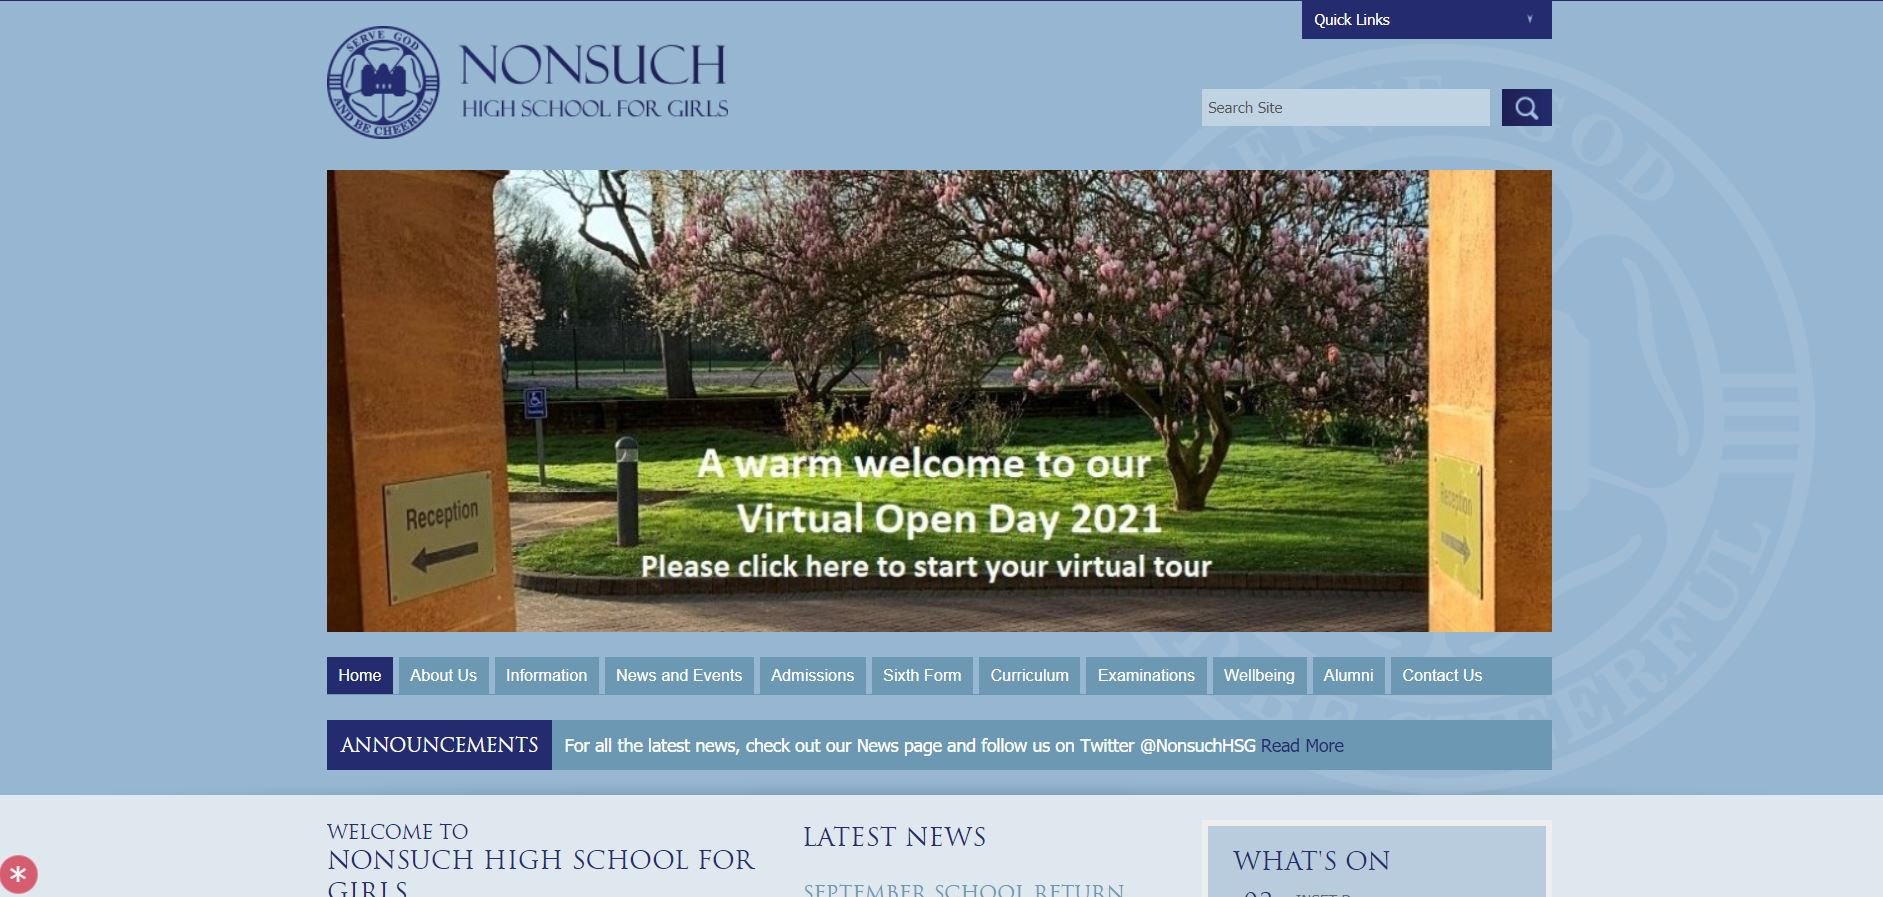 The Nonsuch High School